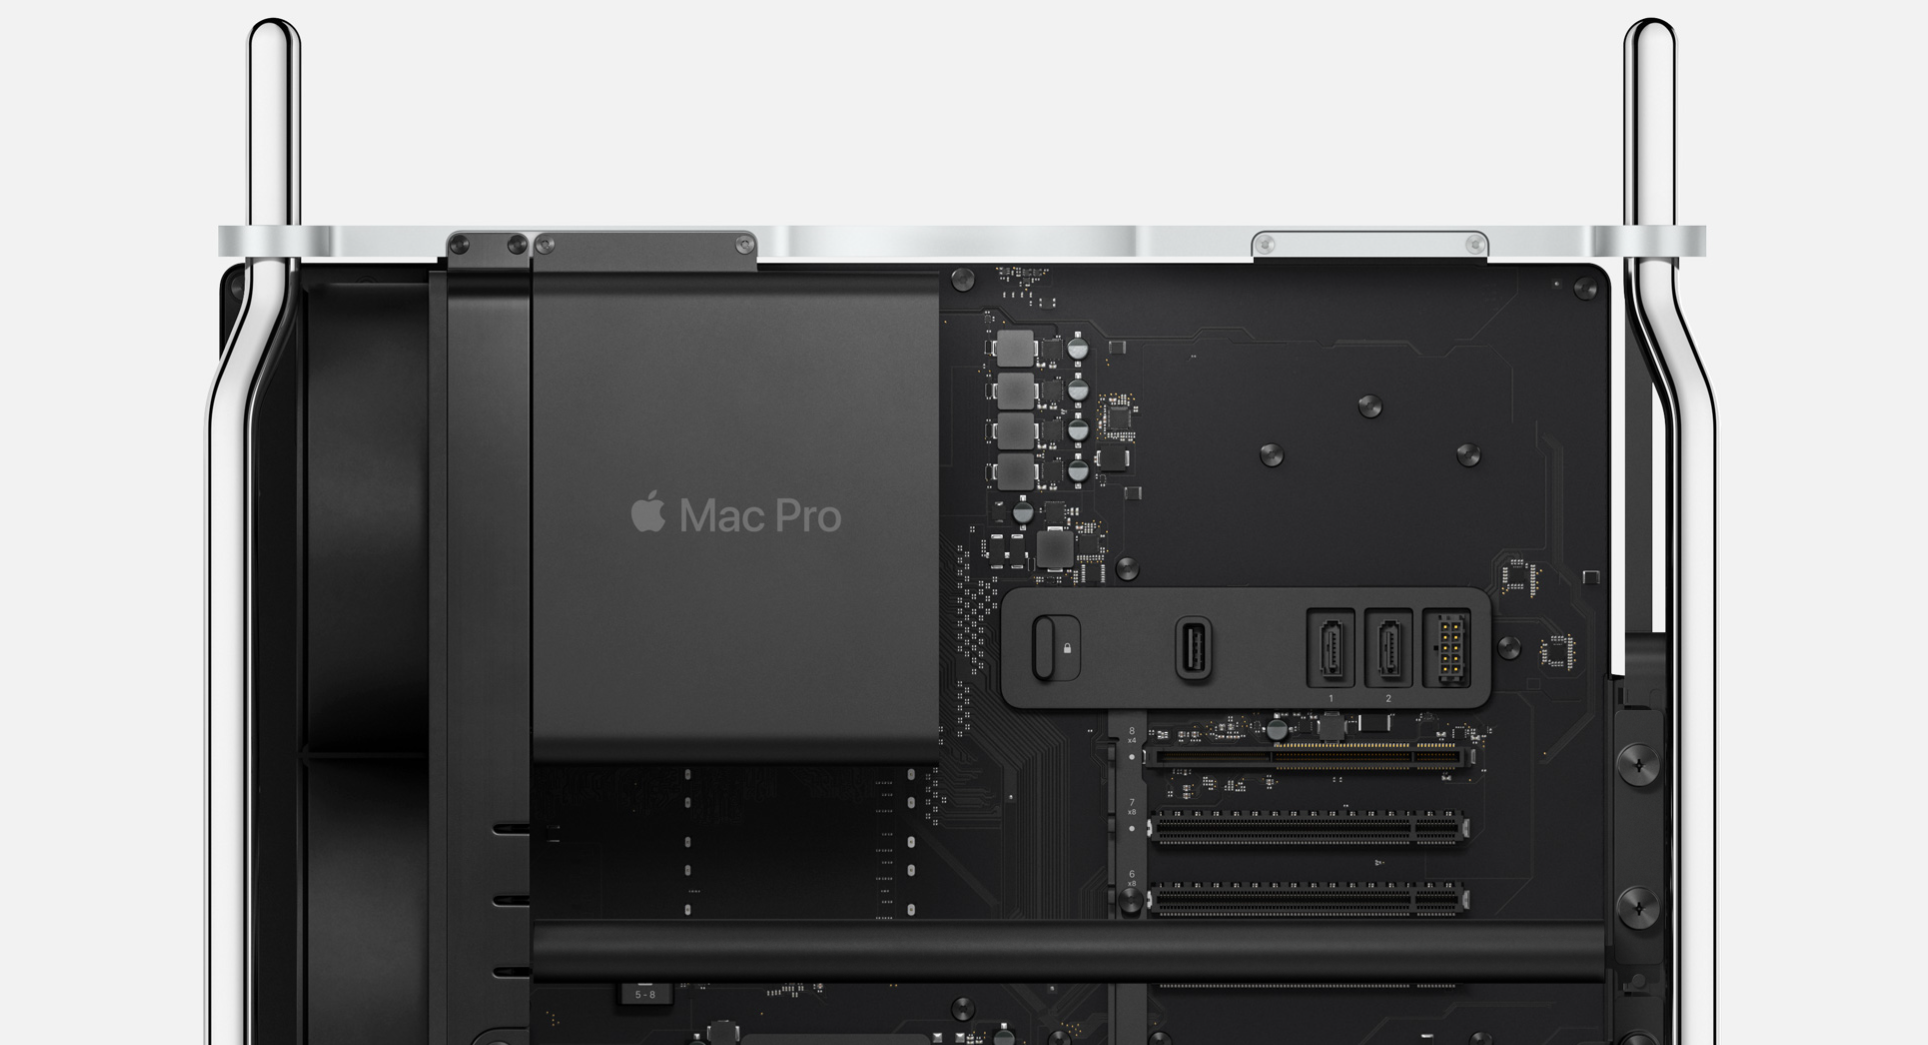 Unboxing the tech of the new Mac Pro by Damian Allen